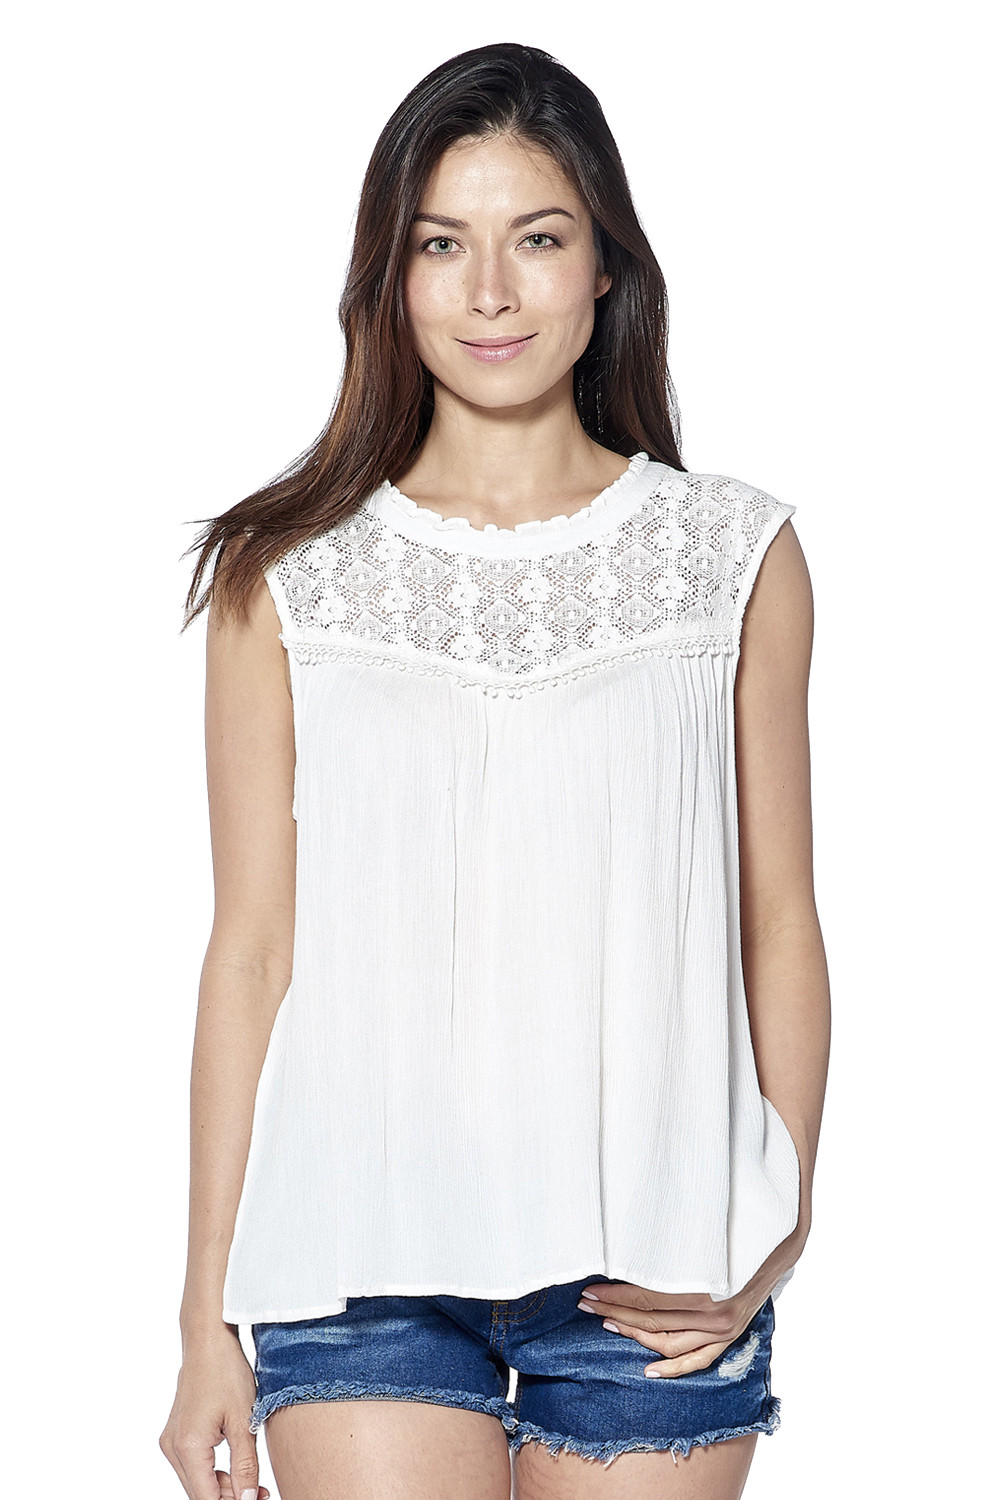 Blouses Dentelle NadineAvec Blouse Outlet Deeluxe mbIY7y6gvf